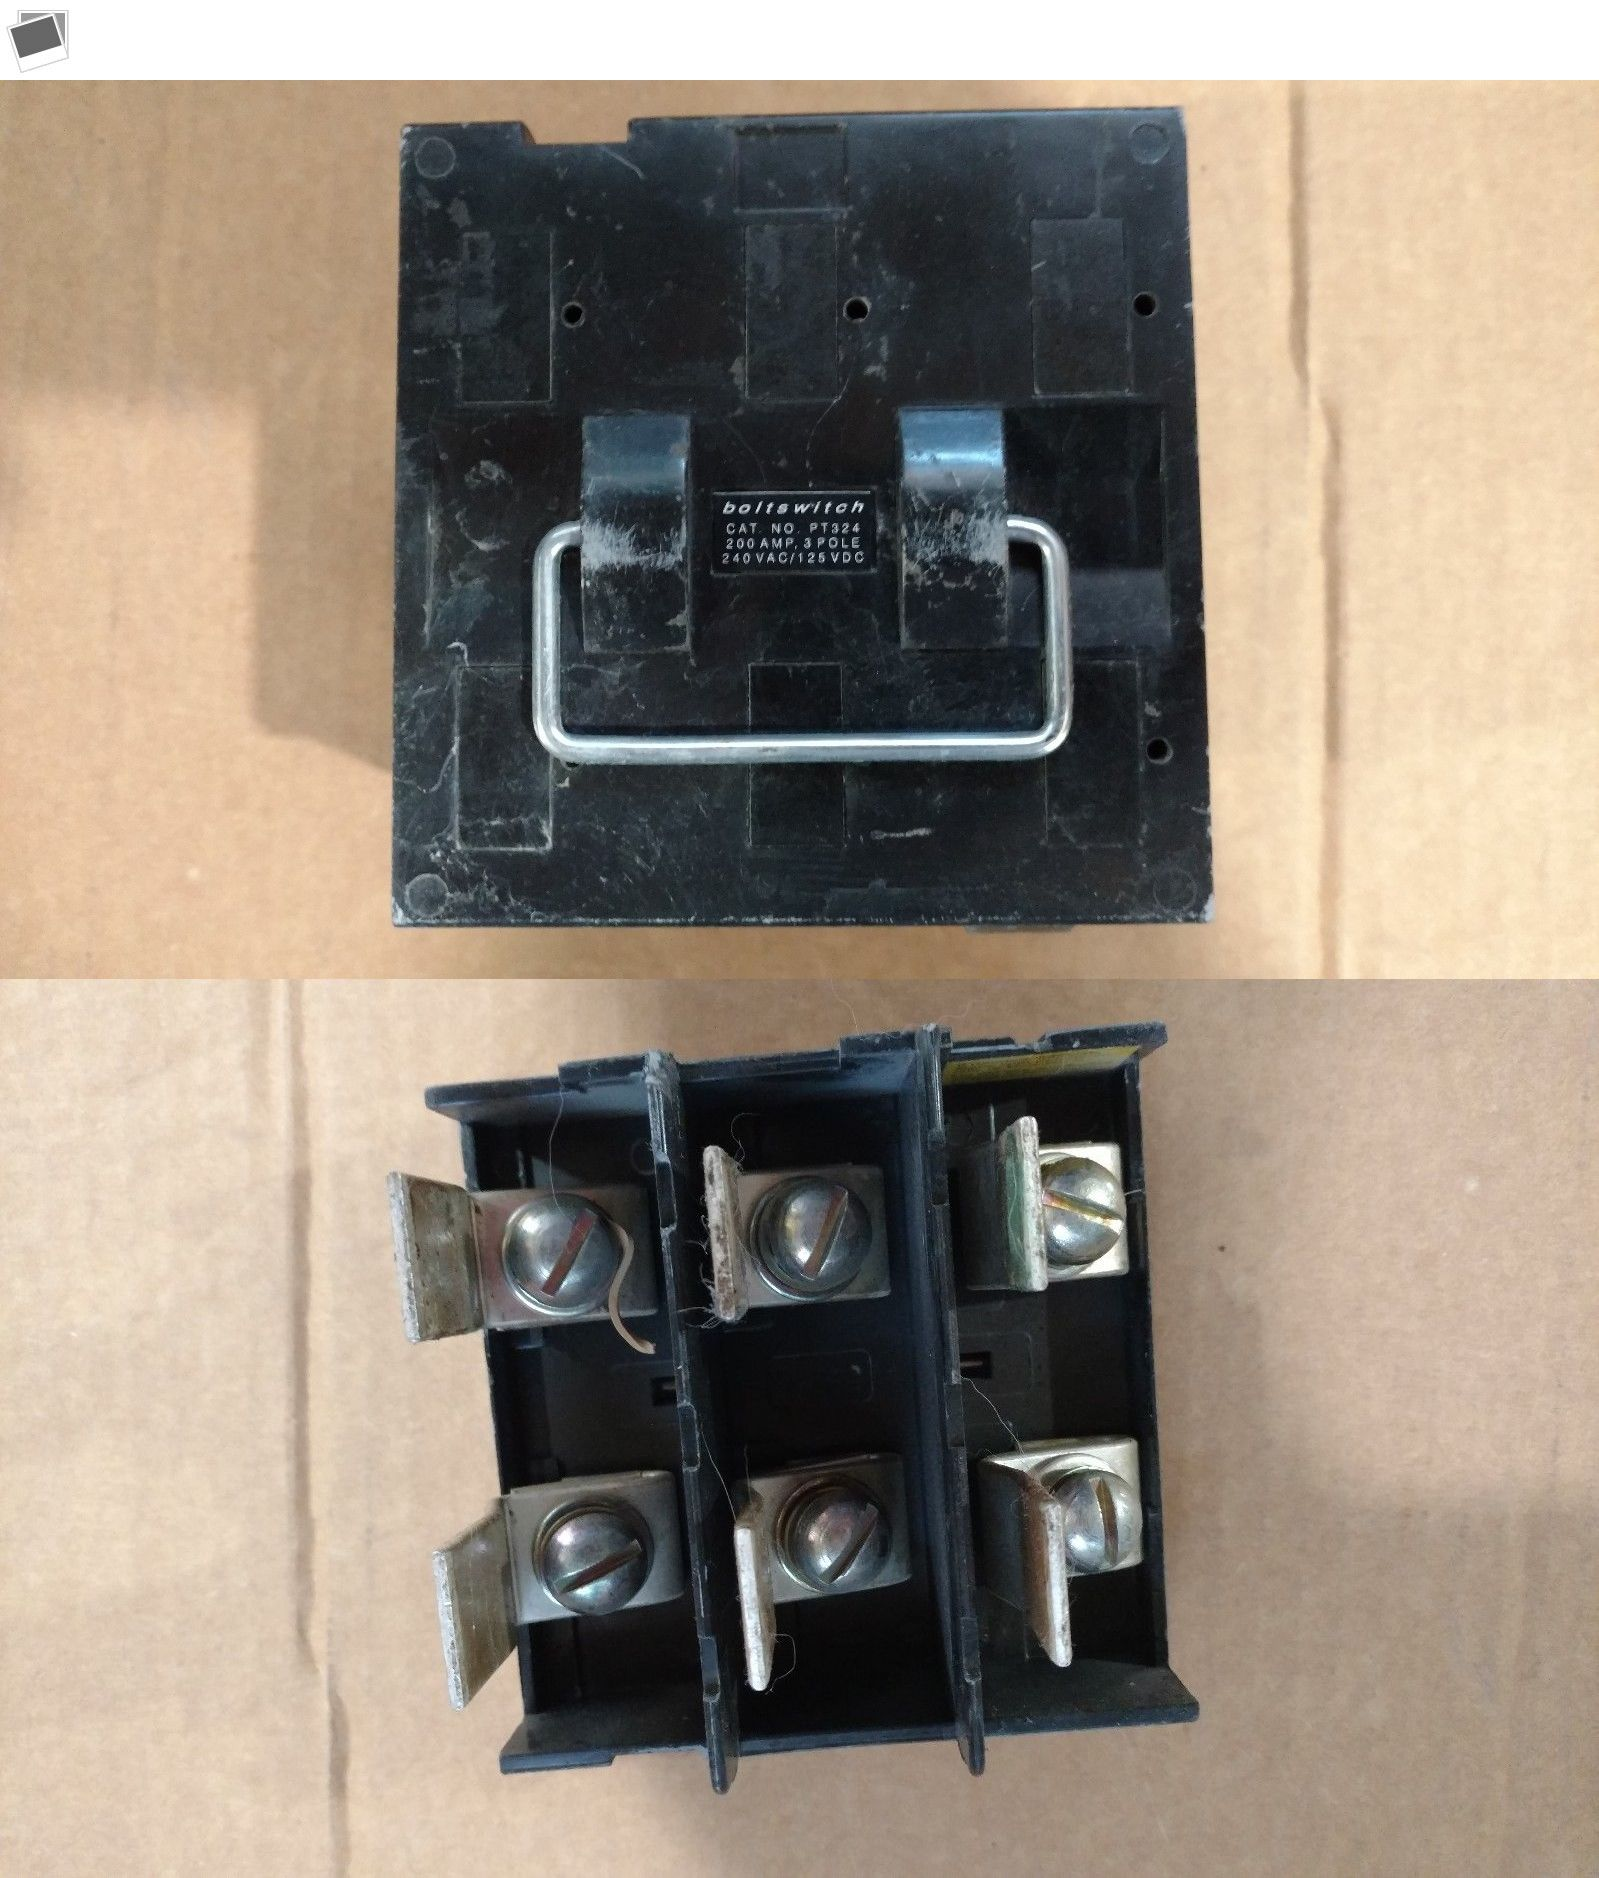 Circuit Breakers And Fuse Boxes 20596 Boltswitch Pt324 Fusable Pull Out Pullout Section Only Free Shipping Buy It Now Onl Fuse Box Stuff To Buy Fuses